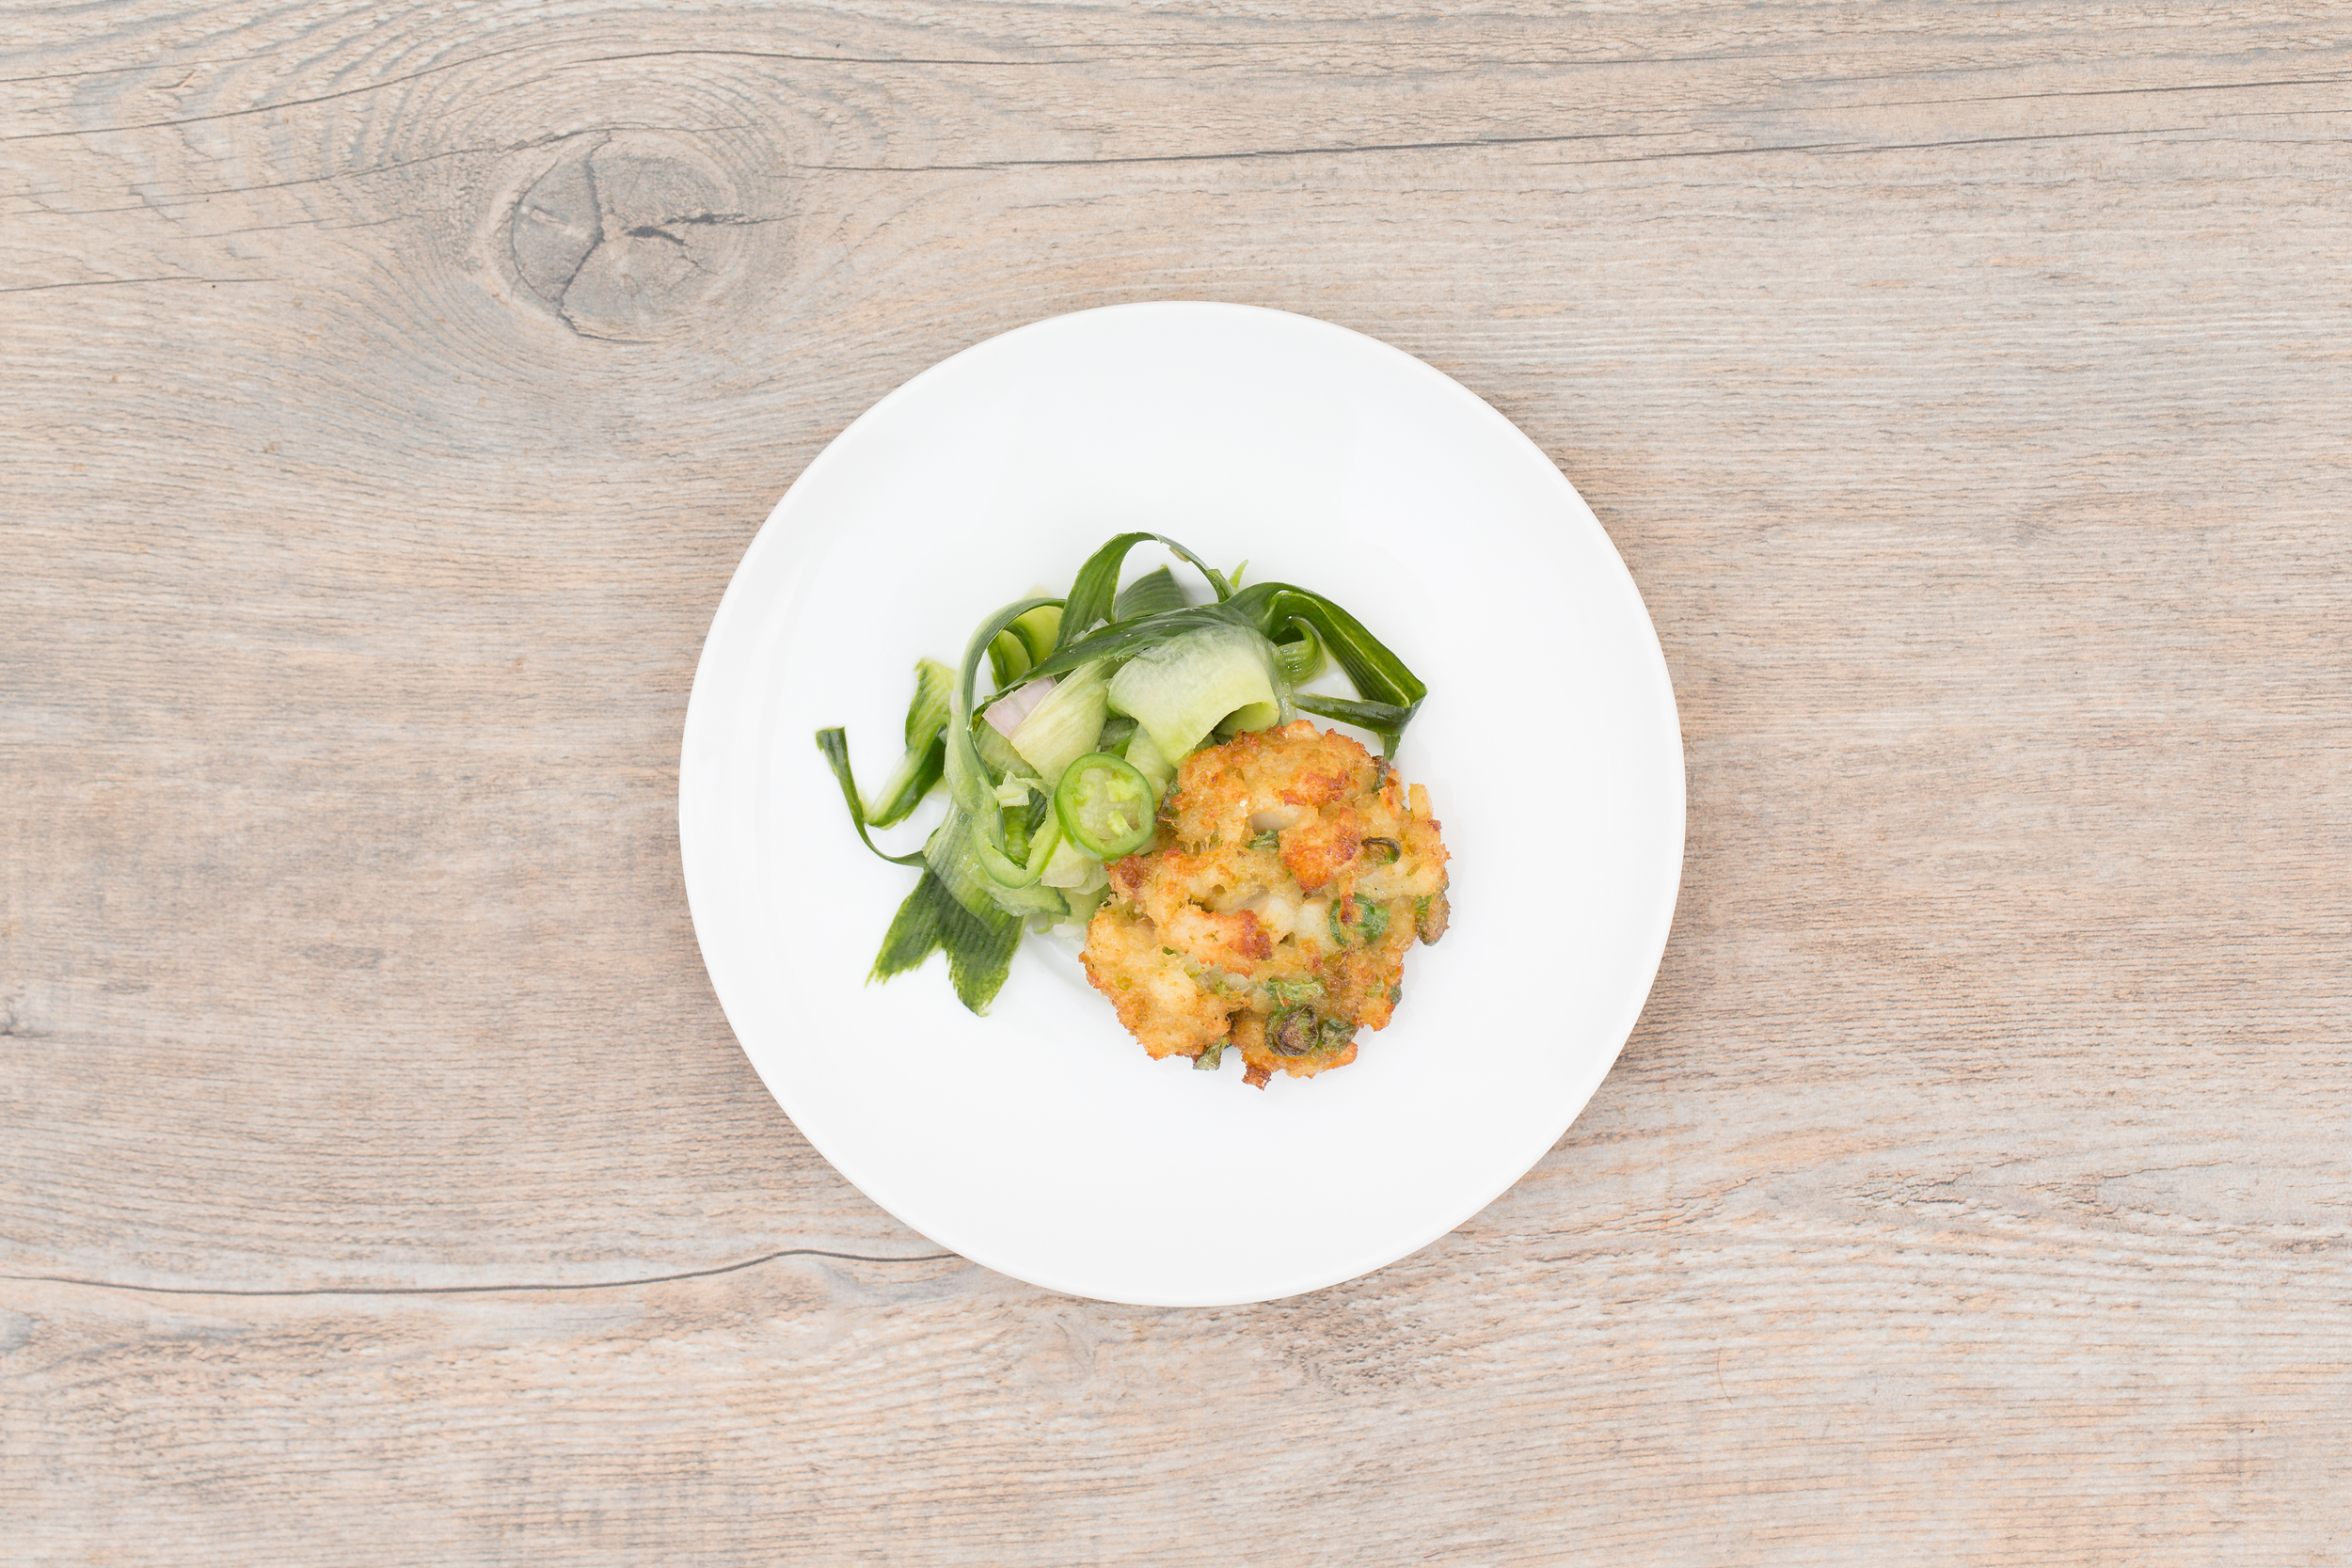 Spicy Thai Fish Cakes with Cucumber Relish